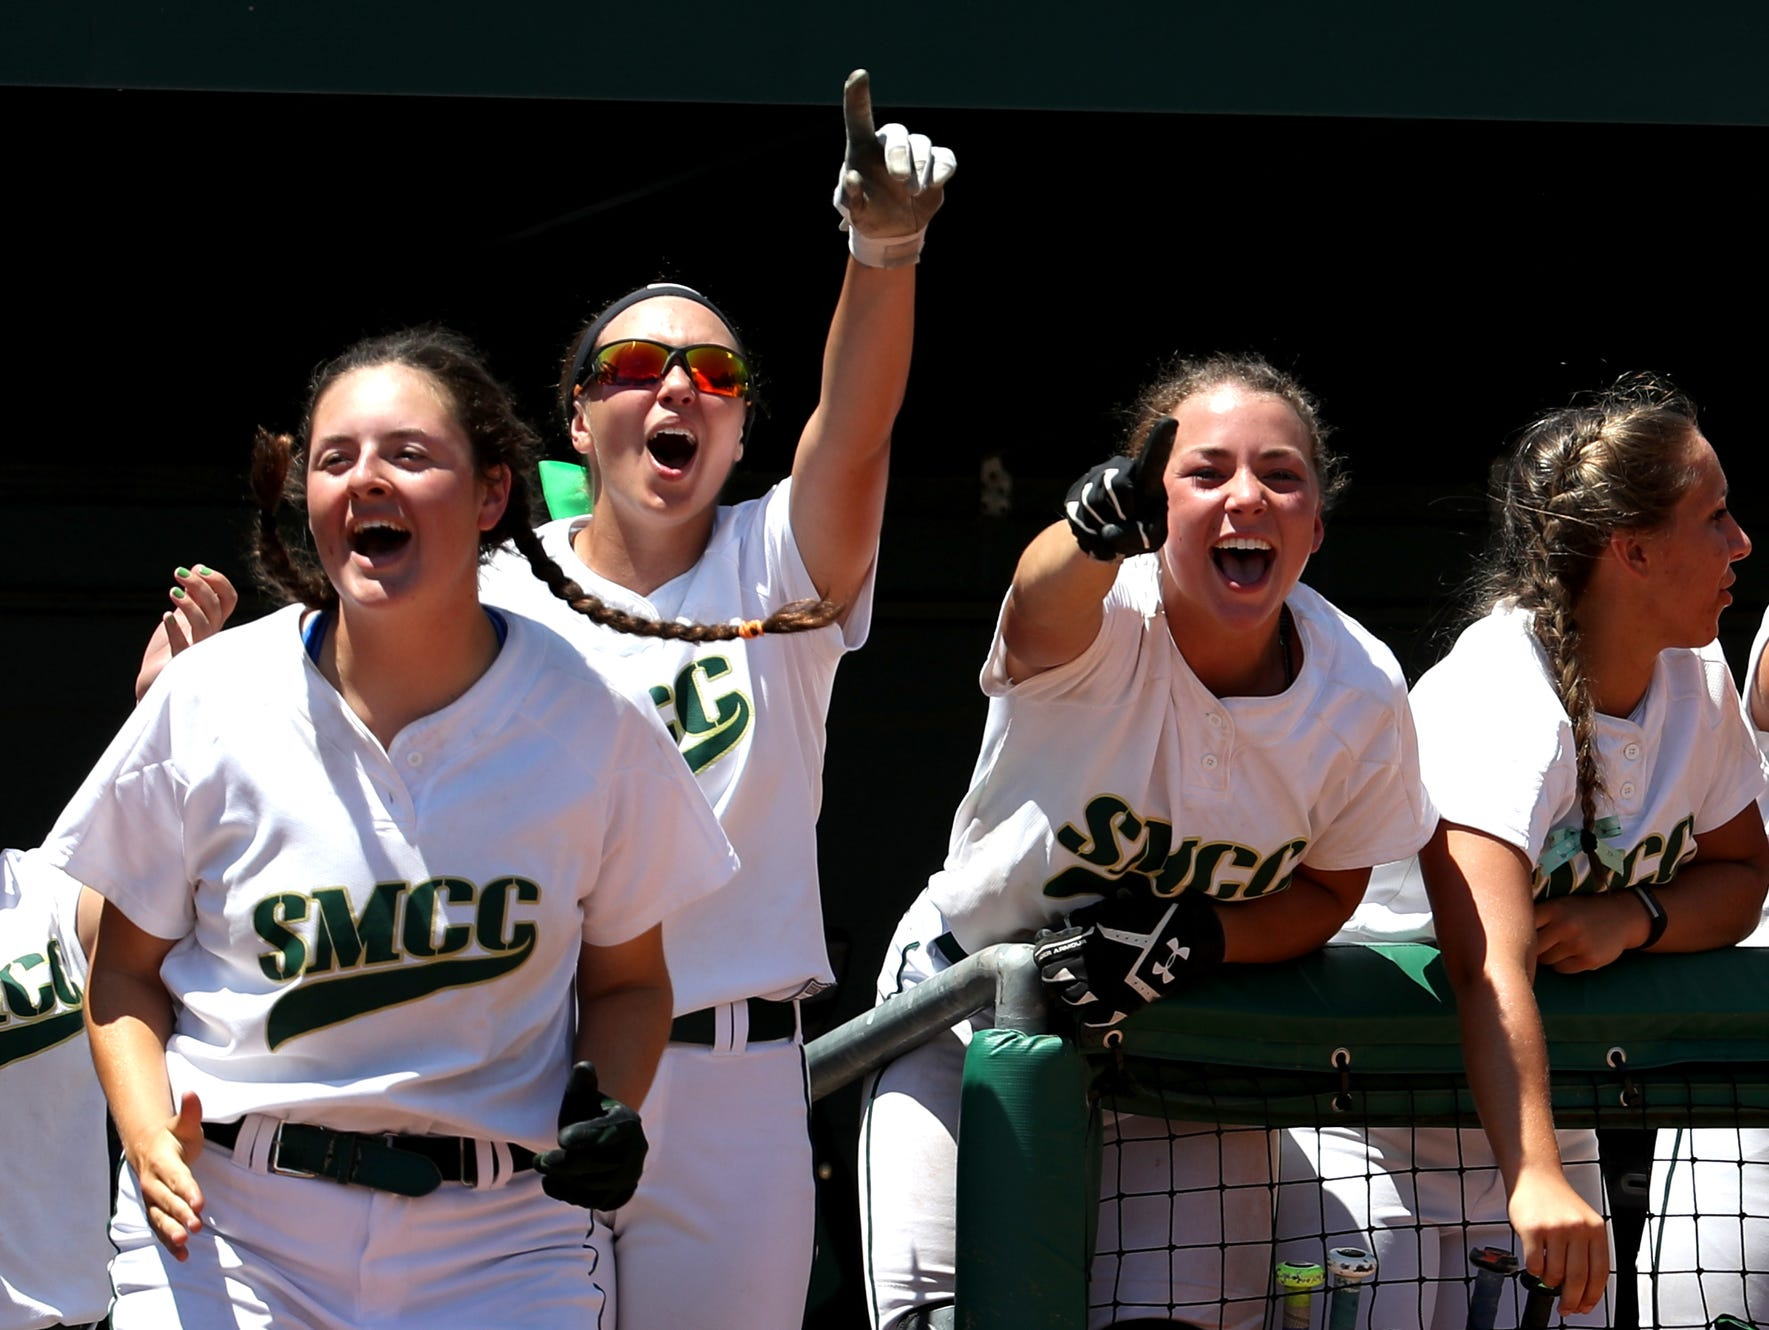 Monroe St. Mary players cheer on their team on the field during their game against Gladstone on Friday, June 17, 2016 at the MHSAA Division 3 softball semi finals at Michigan State University in East Lansing, Michigan. Monroe St. Mary's won the game 13-0 in 5 inning to reach the division 3 finals on Saturday.